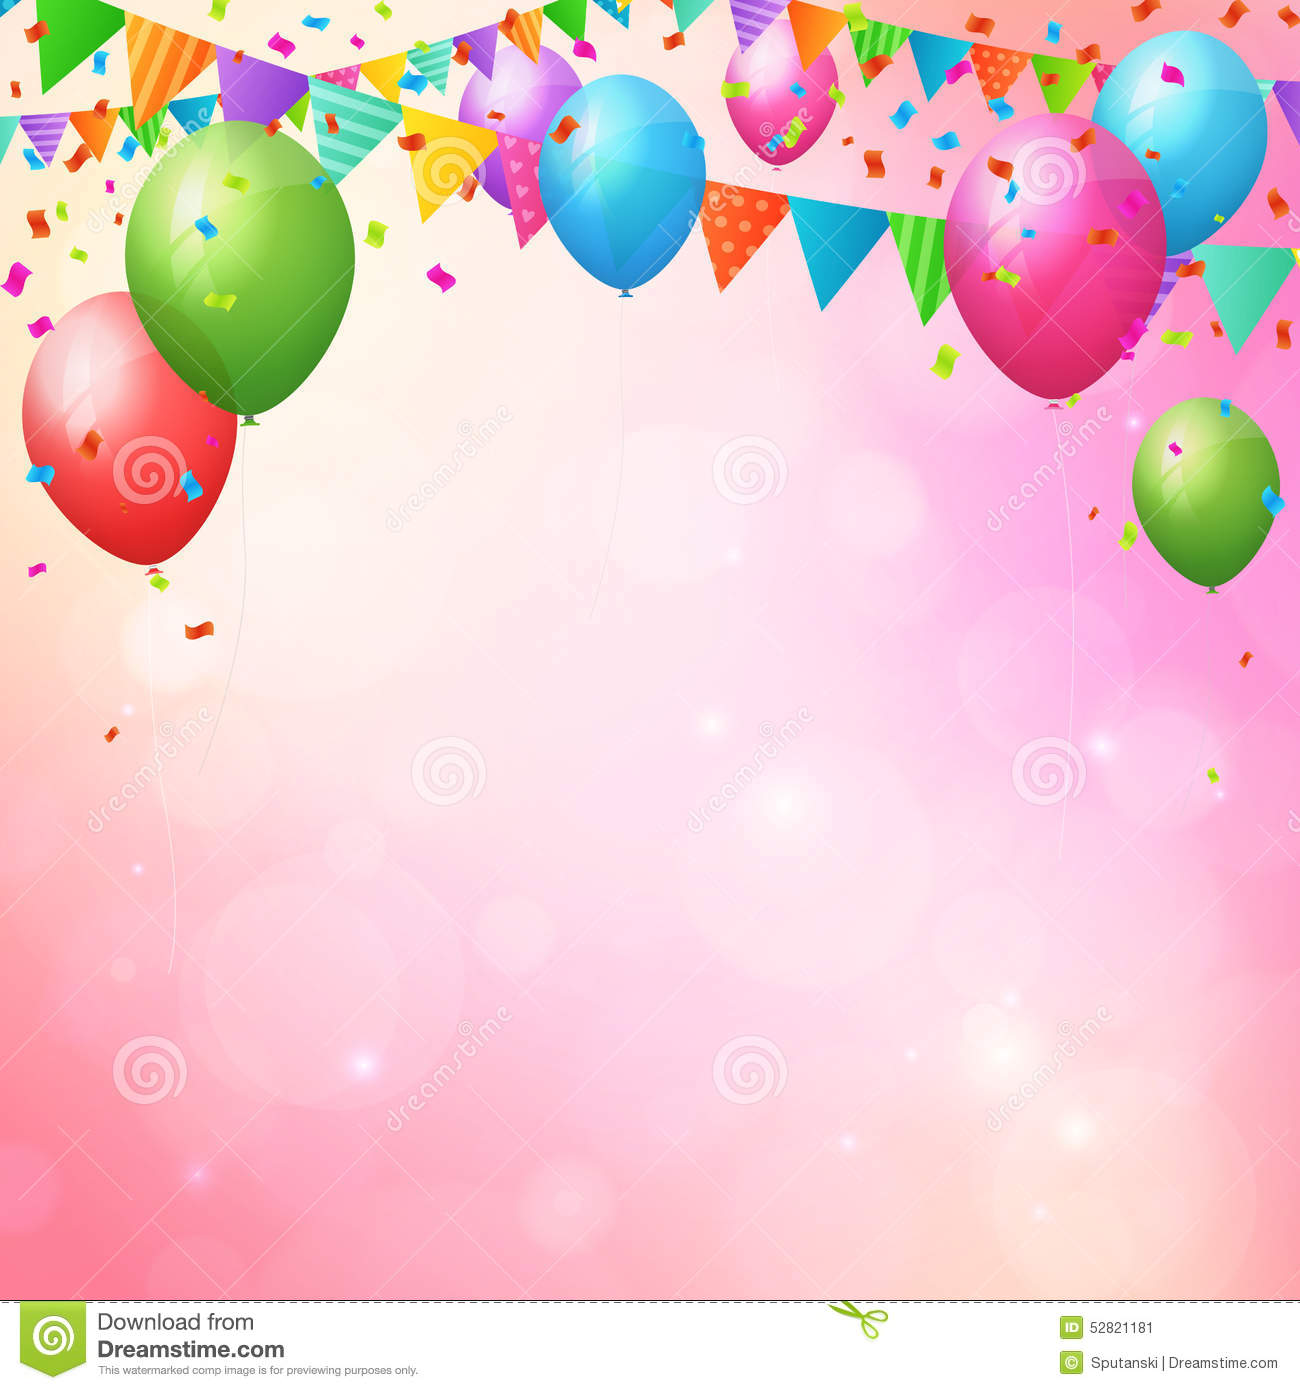 happy birthday poster with photo ; happy-birthday-background-balloons-flags-poster-layered-52821181